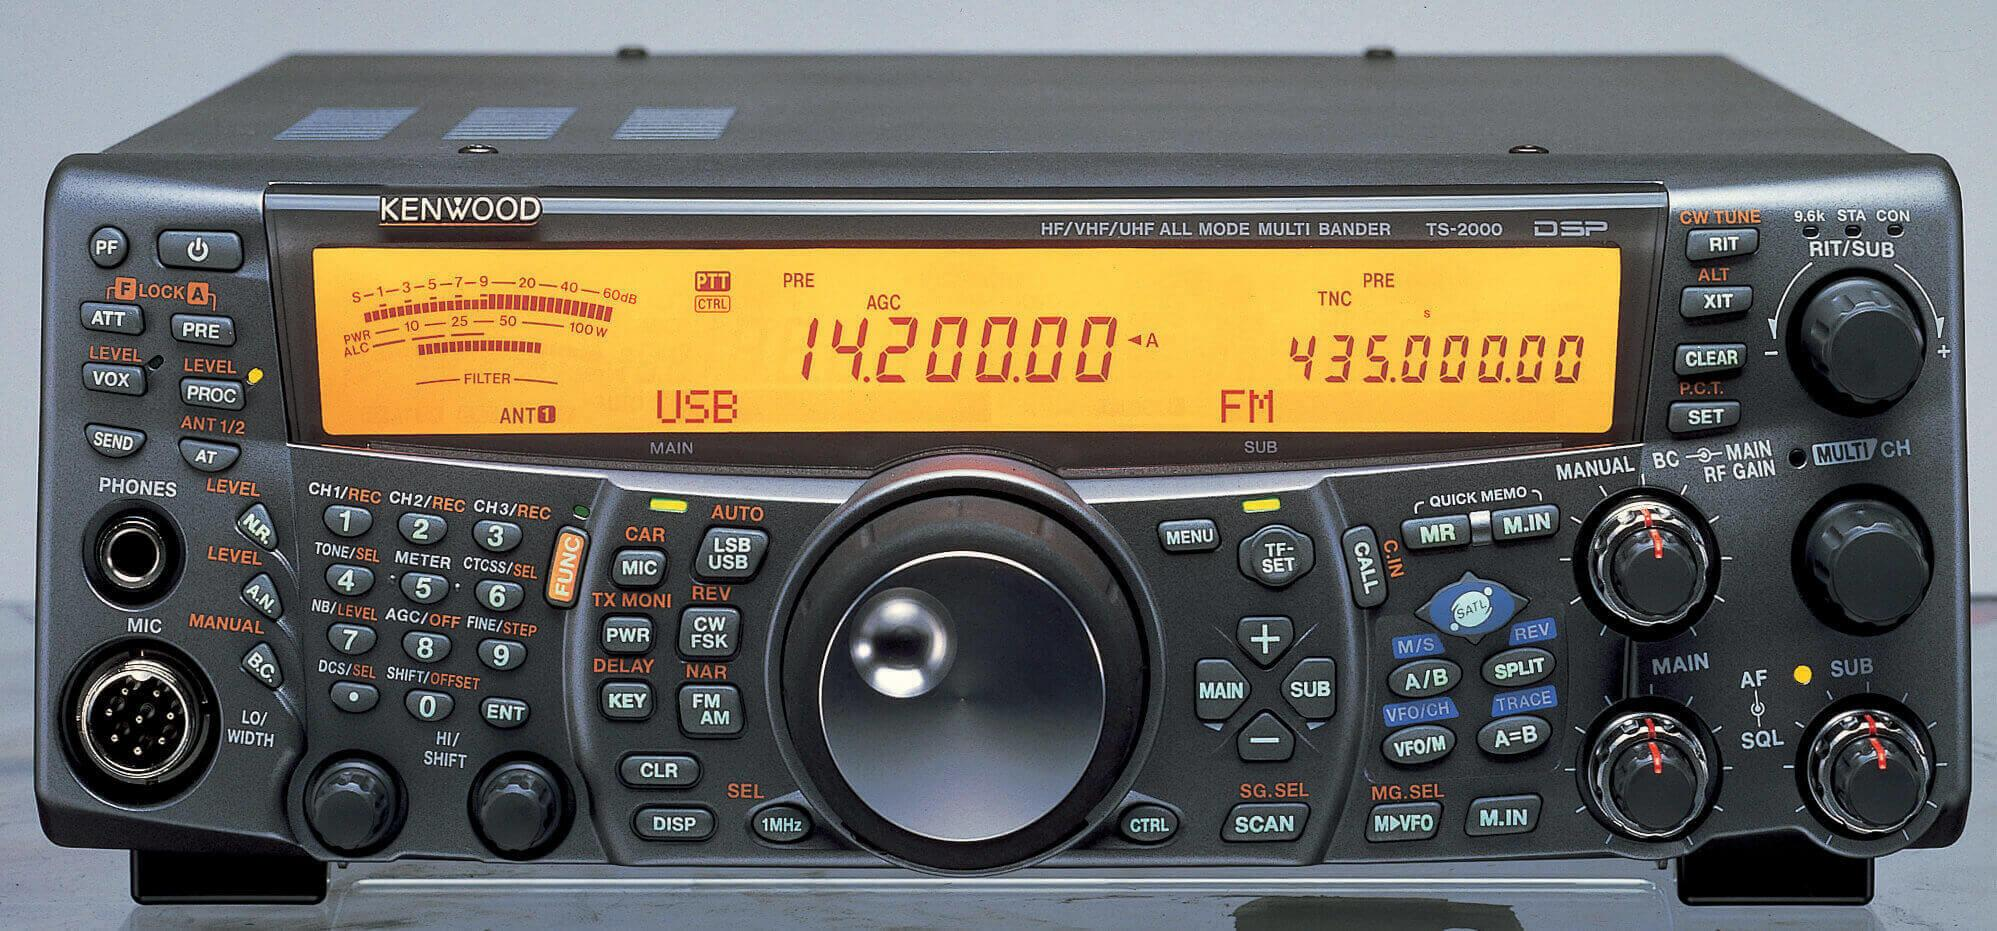 KENWOOD TS-2000 ALL-MODE MULTI-BAND TRANSCEIVER